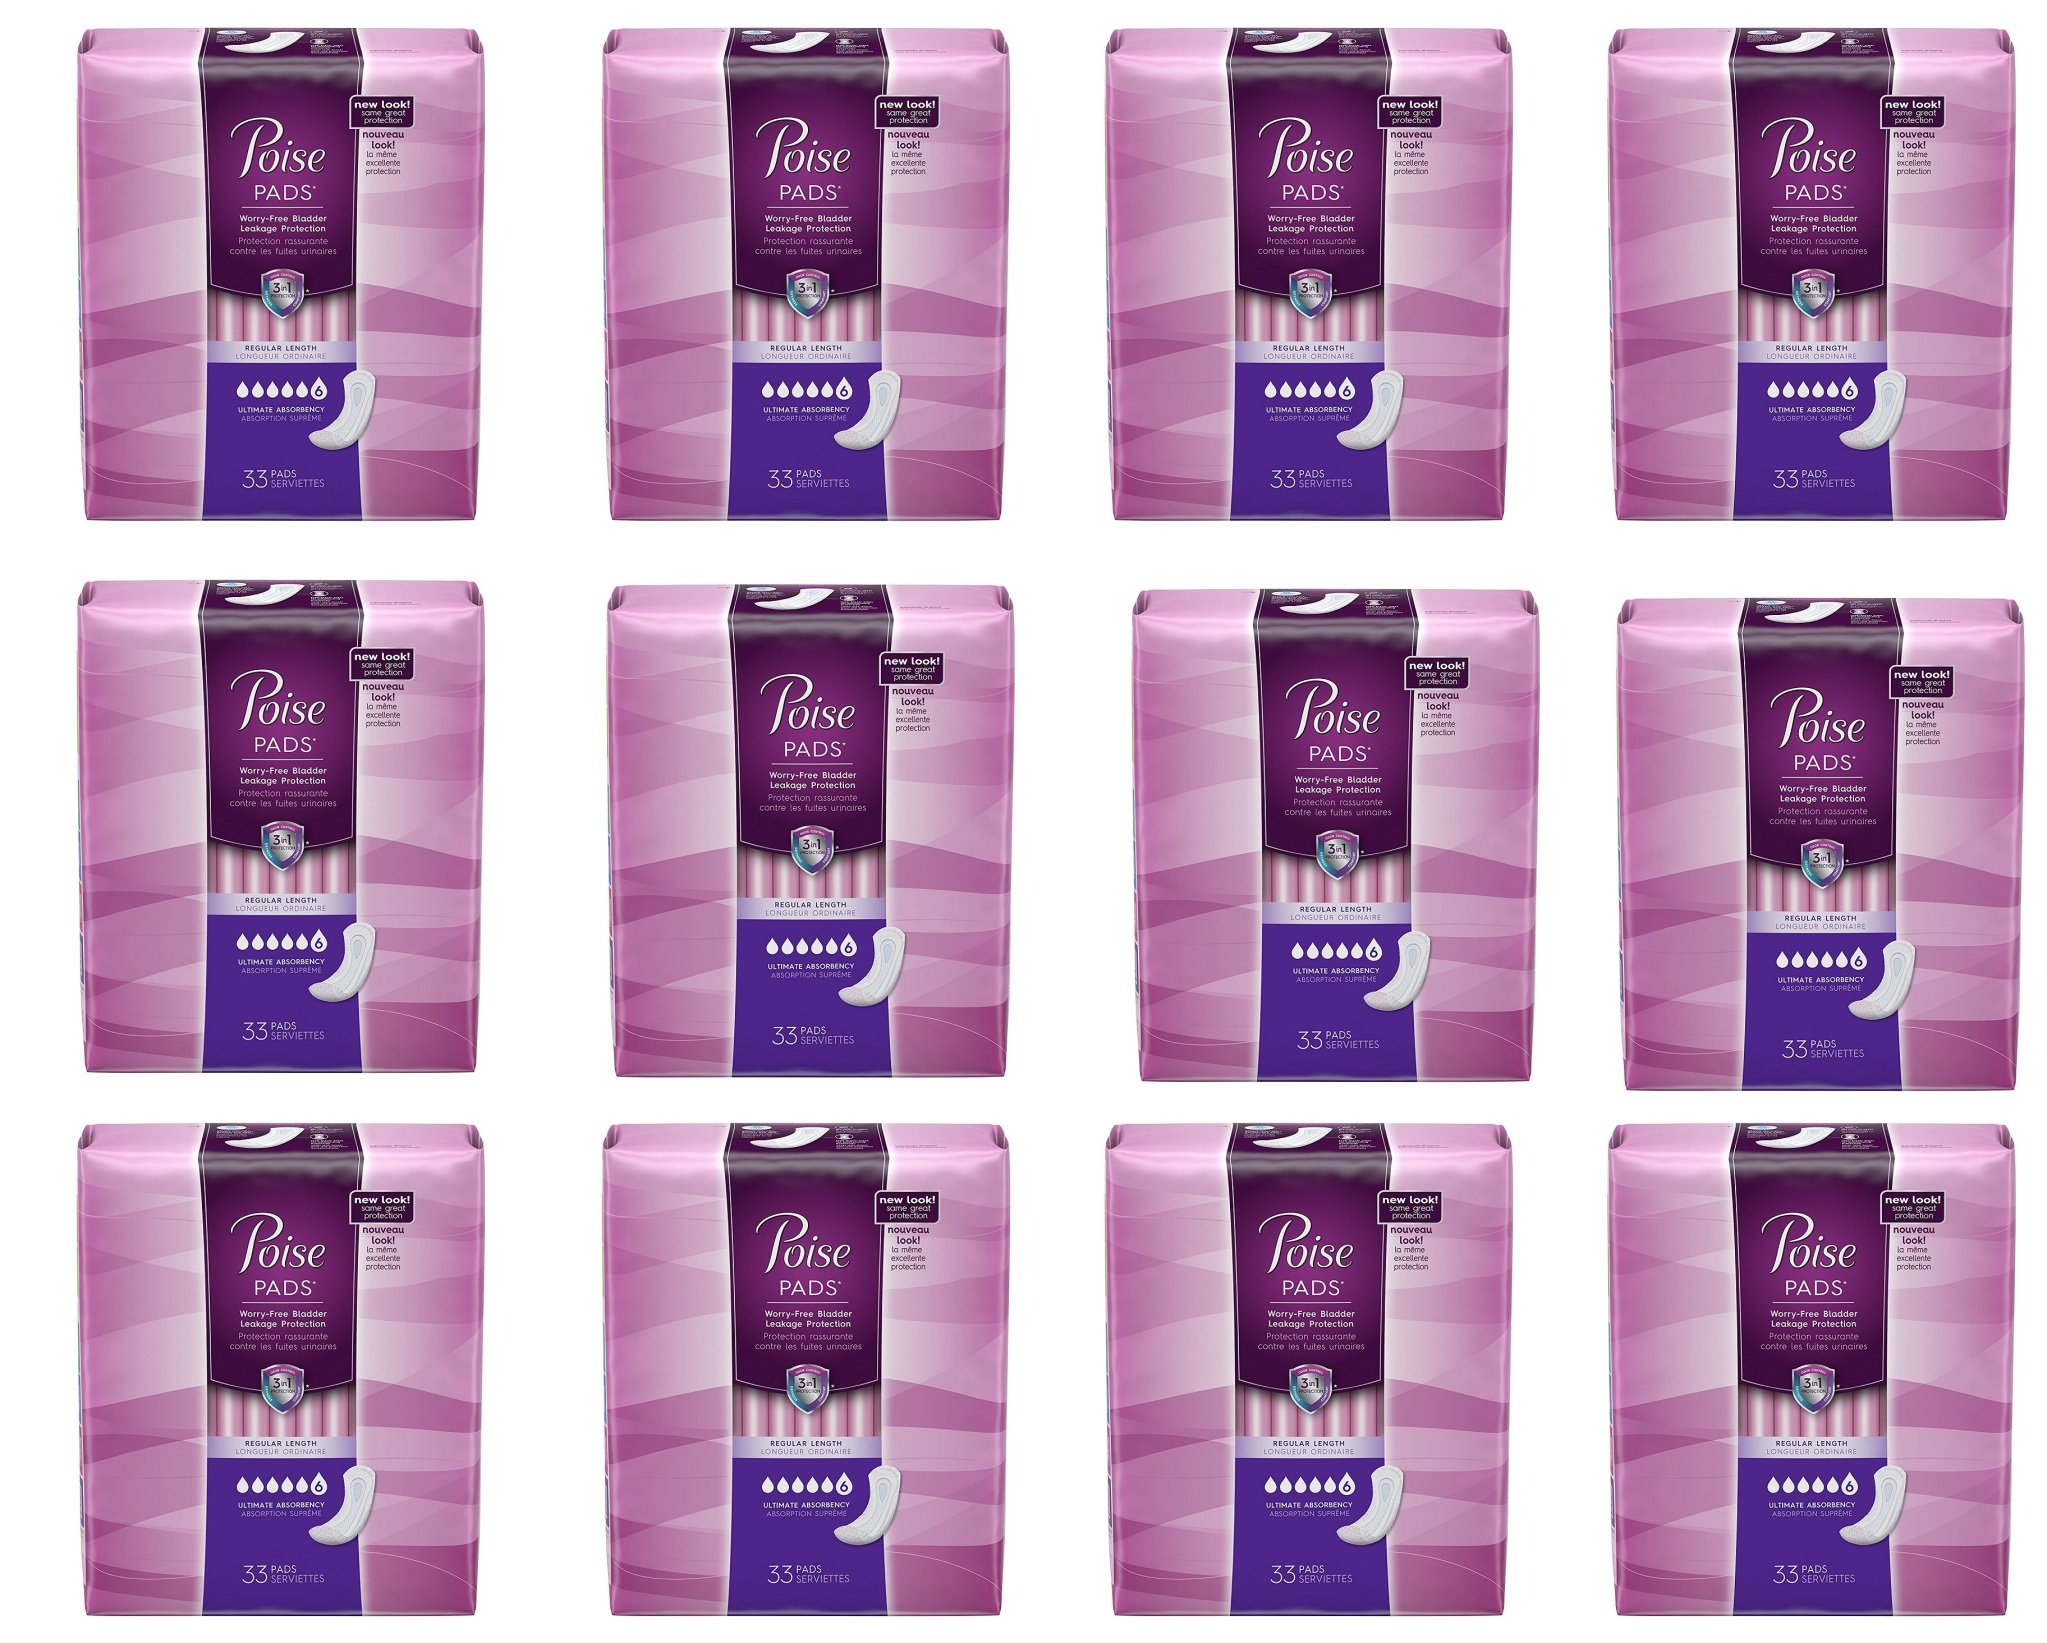 Poise Incontinence Overnight Pads, Ultimate Absorbency, Long, kqhTpf 12 Pack (33 Count)